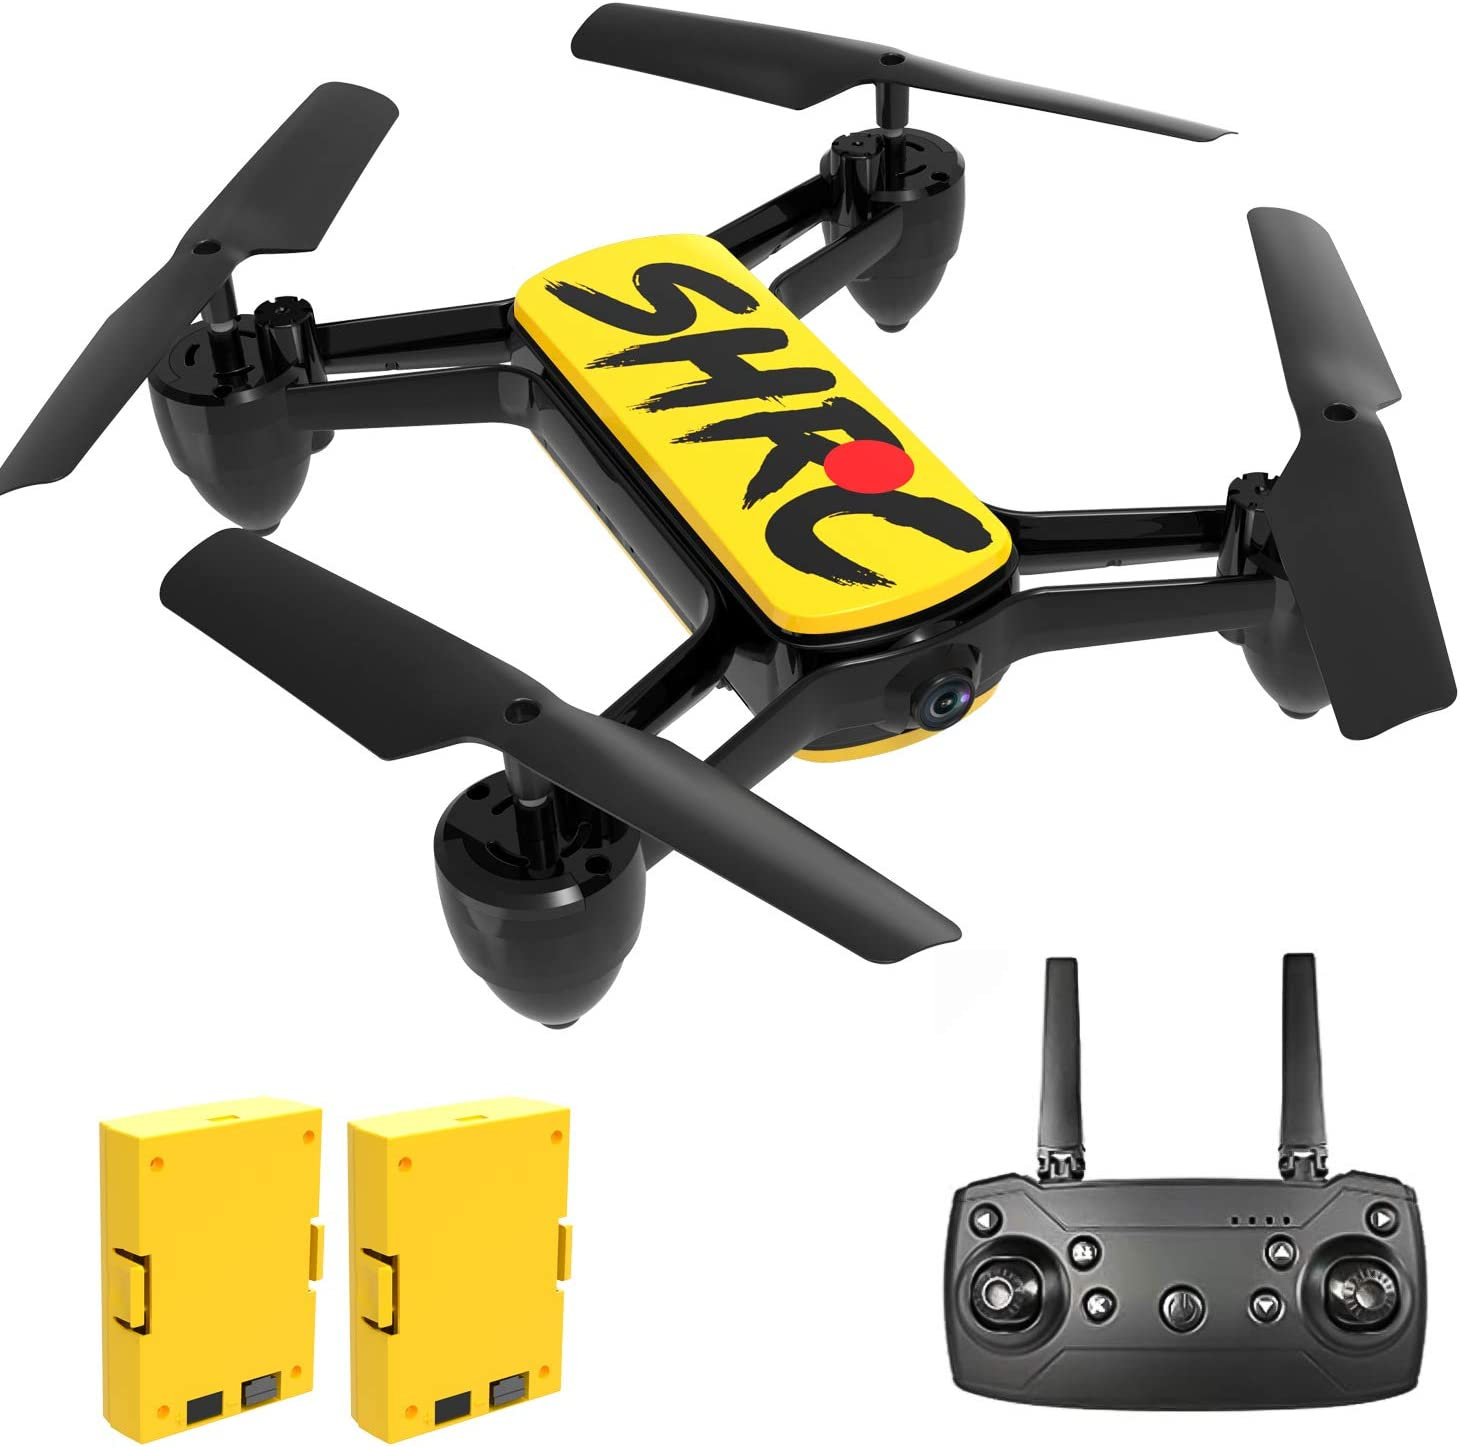 Drone with 4K Camera,HD WiFi Transmission Live Video,2 Modular Batteries 30mins Flying Time,Altitude Hold,Headless Mode,3D Flips,One Key Start/Land,Drone for Beginners Adults and Kids(Yellow)